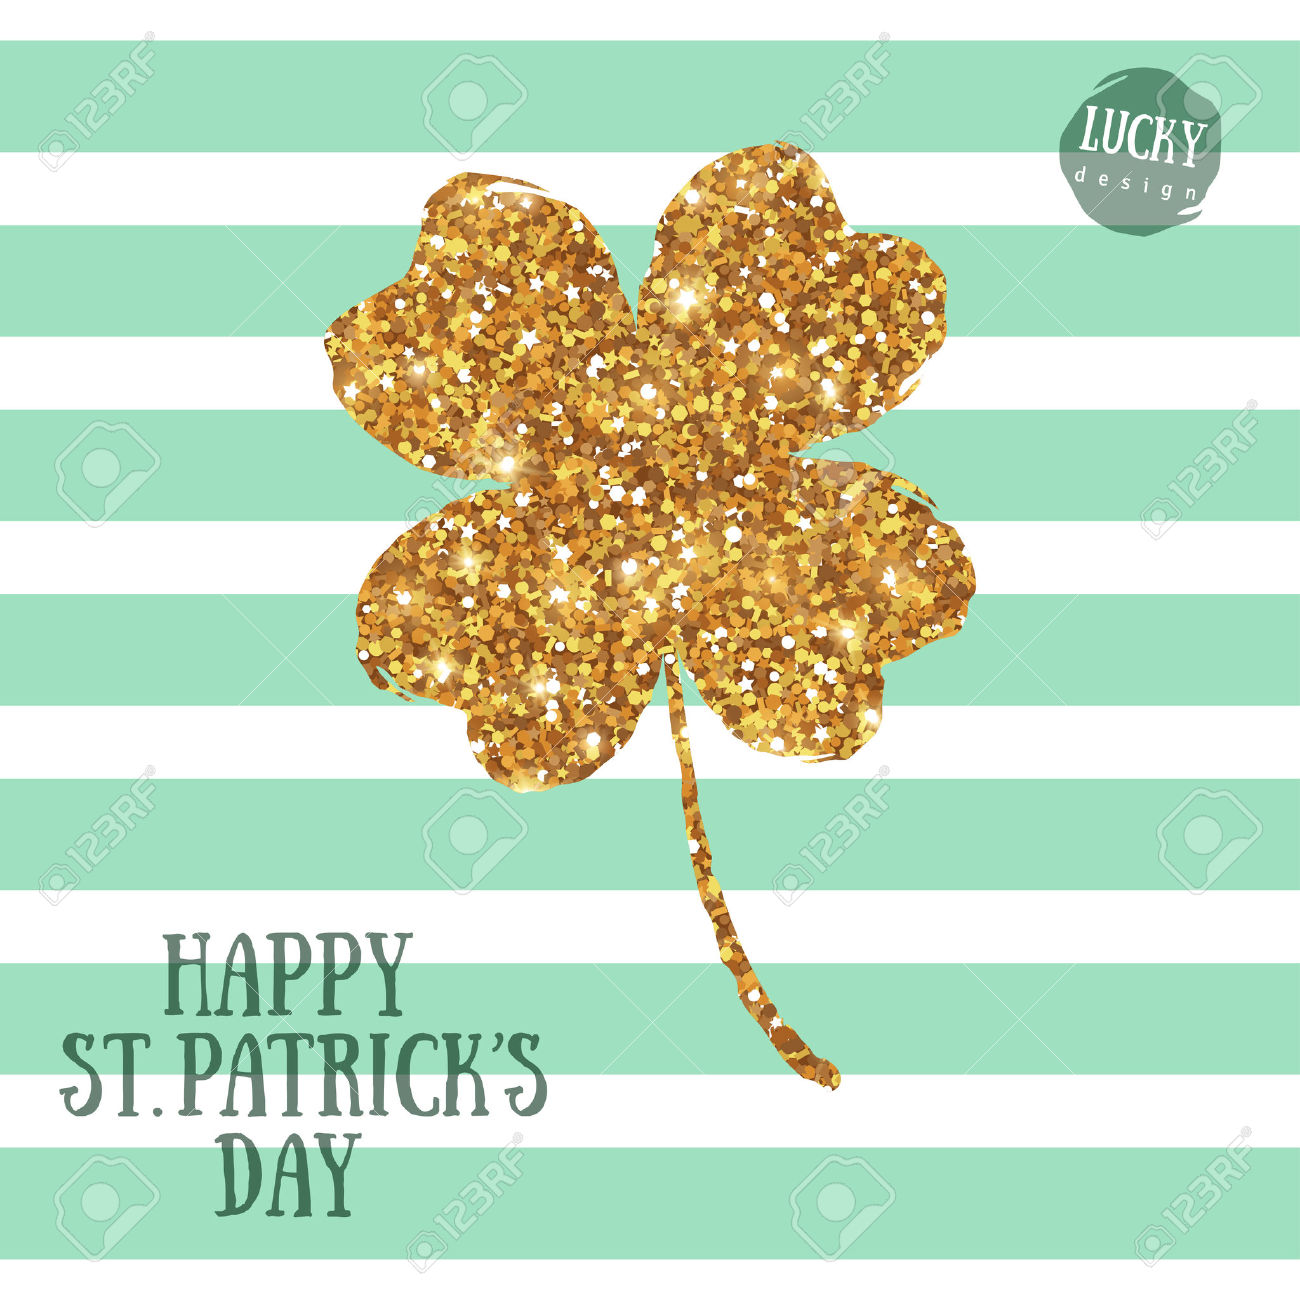 Happy St. Patrick's Day Greeting Card With Gold Four Leaf Clover.